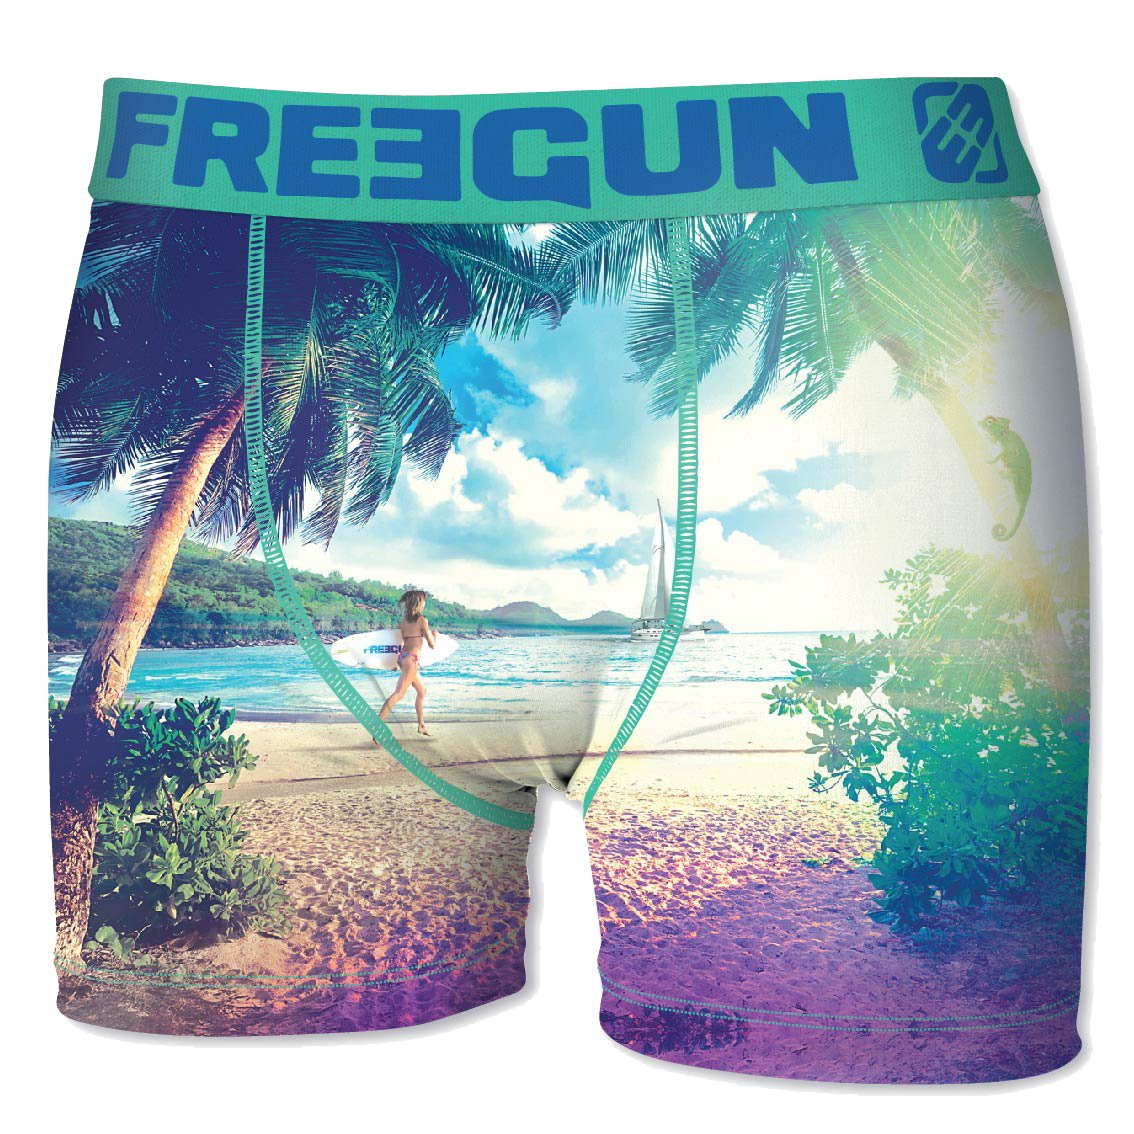 FREEGUN. Boxer for Boys FGP45 Holidays in Microfiber - Assortment Models Photos According to Arrivals